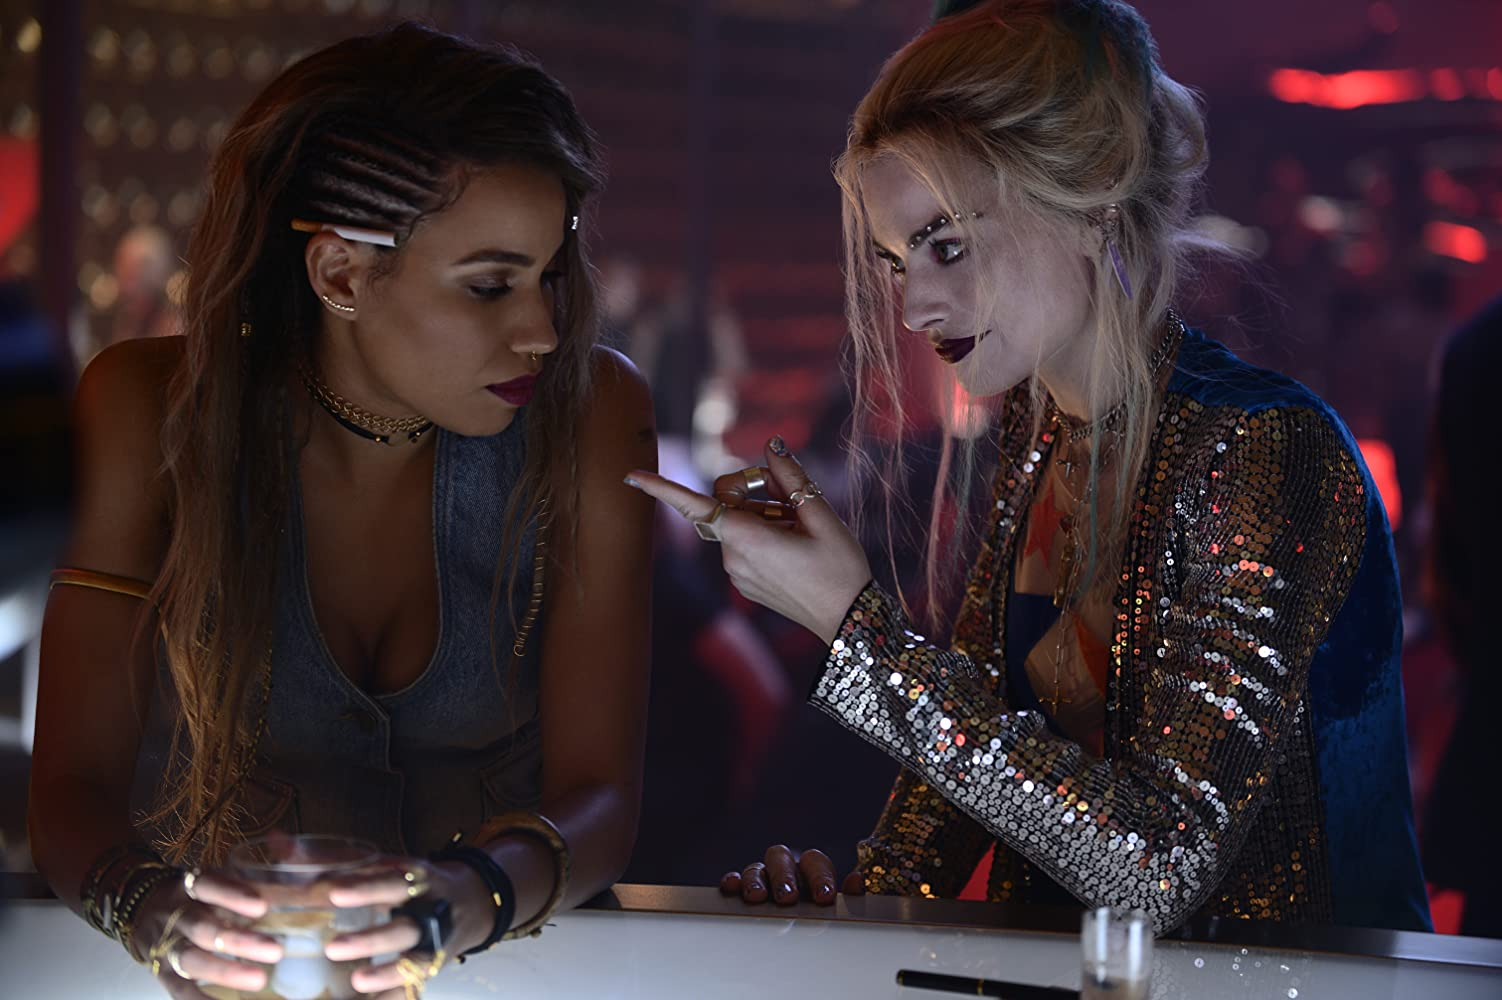 Jurnee Smollett-Bell and Margot Robbie in Birds of Prey: And the Fantabulous Emancipation of One Harley Quinn (2020)